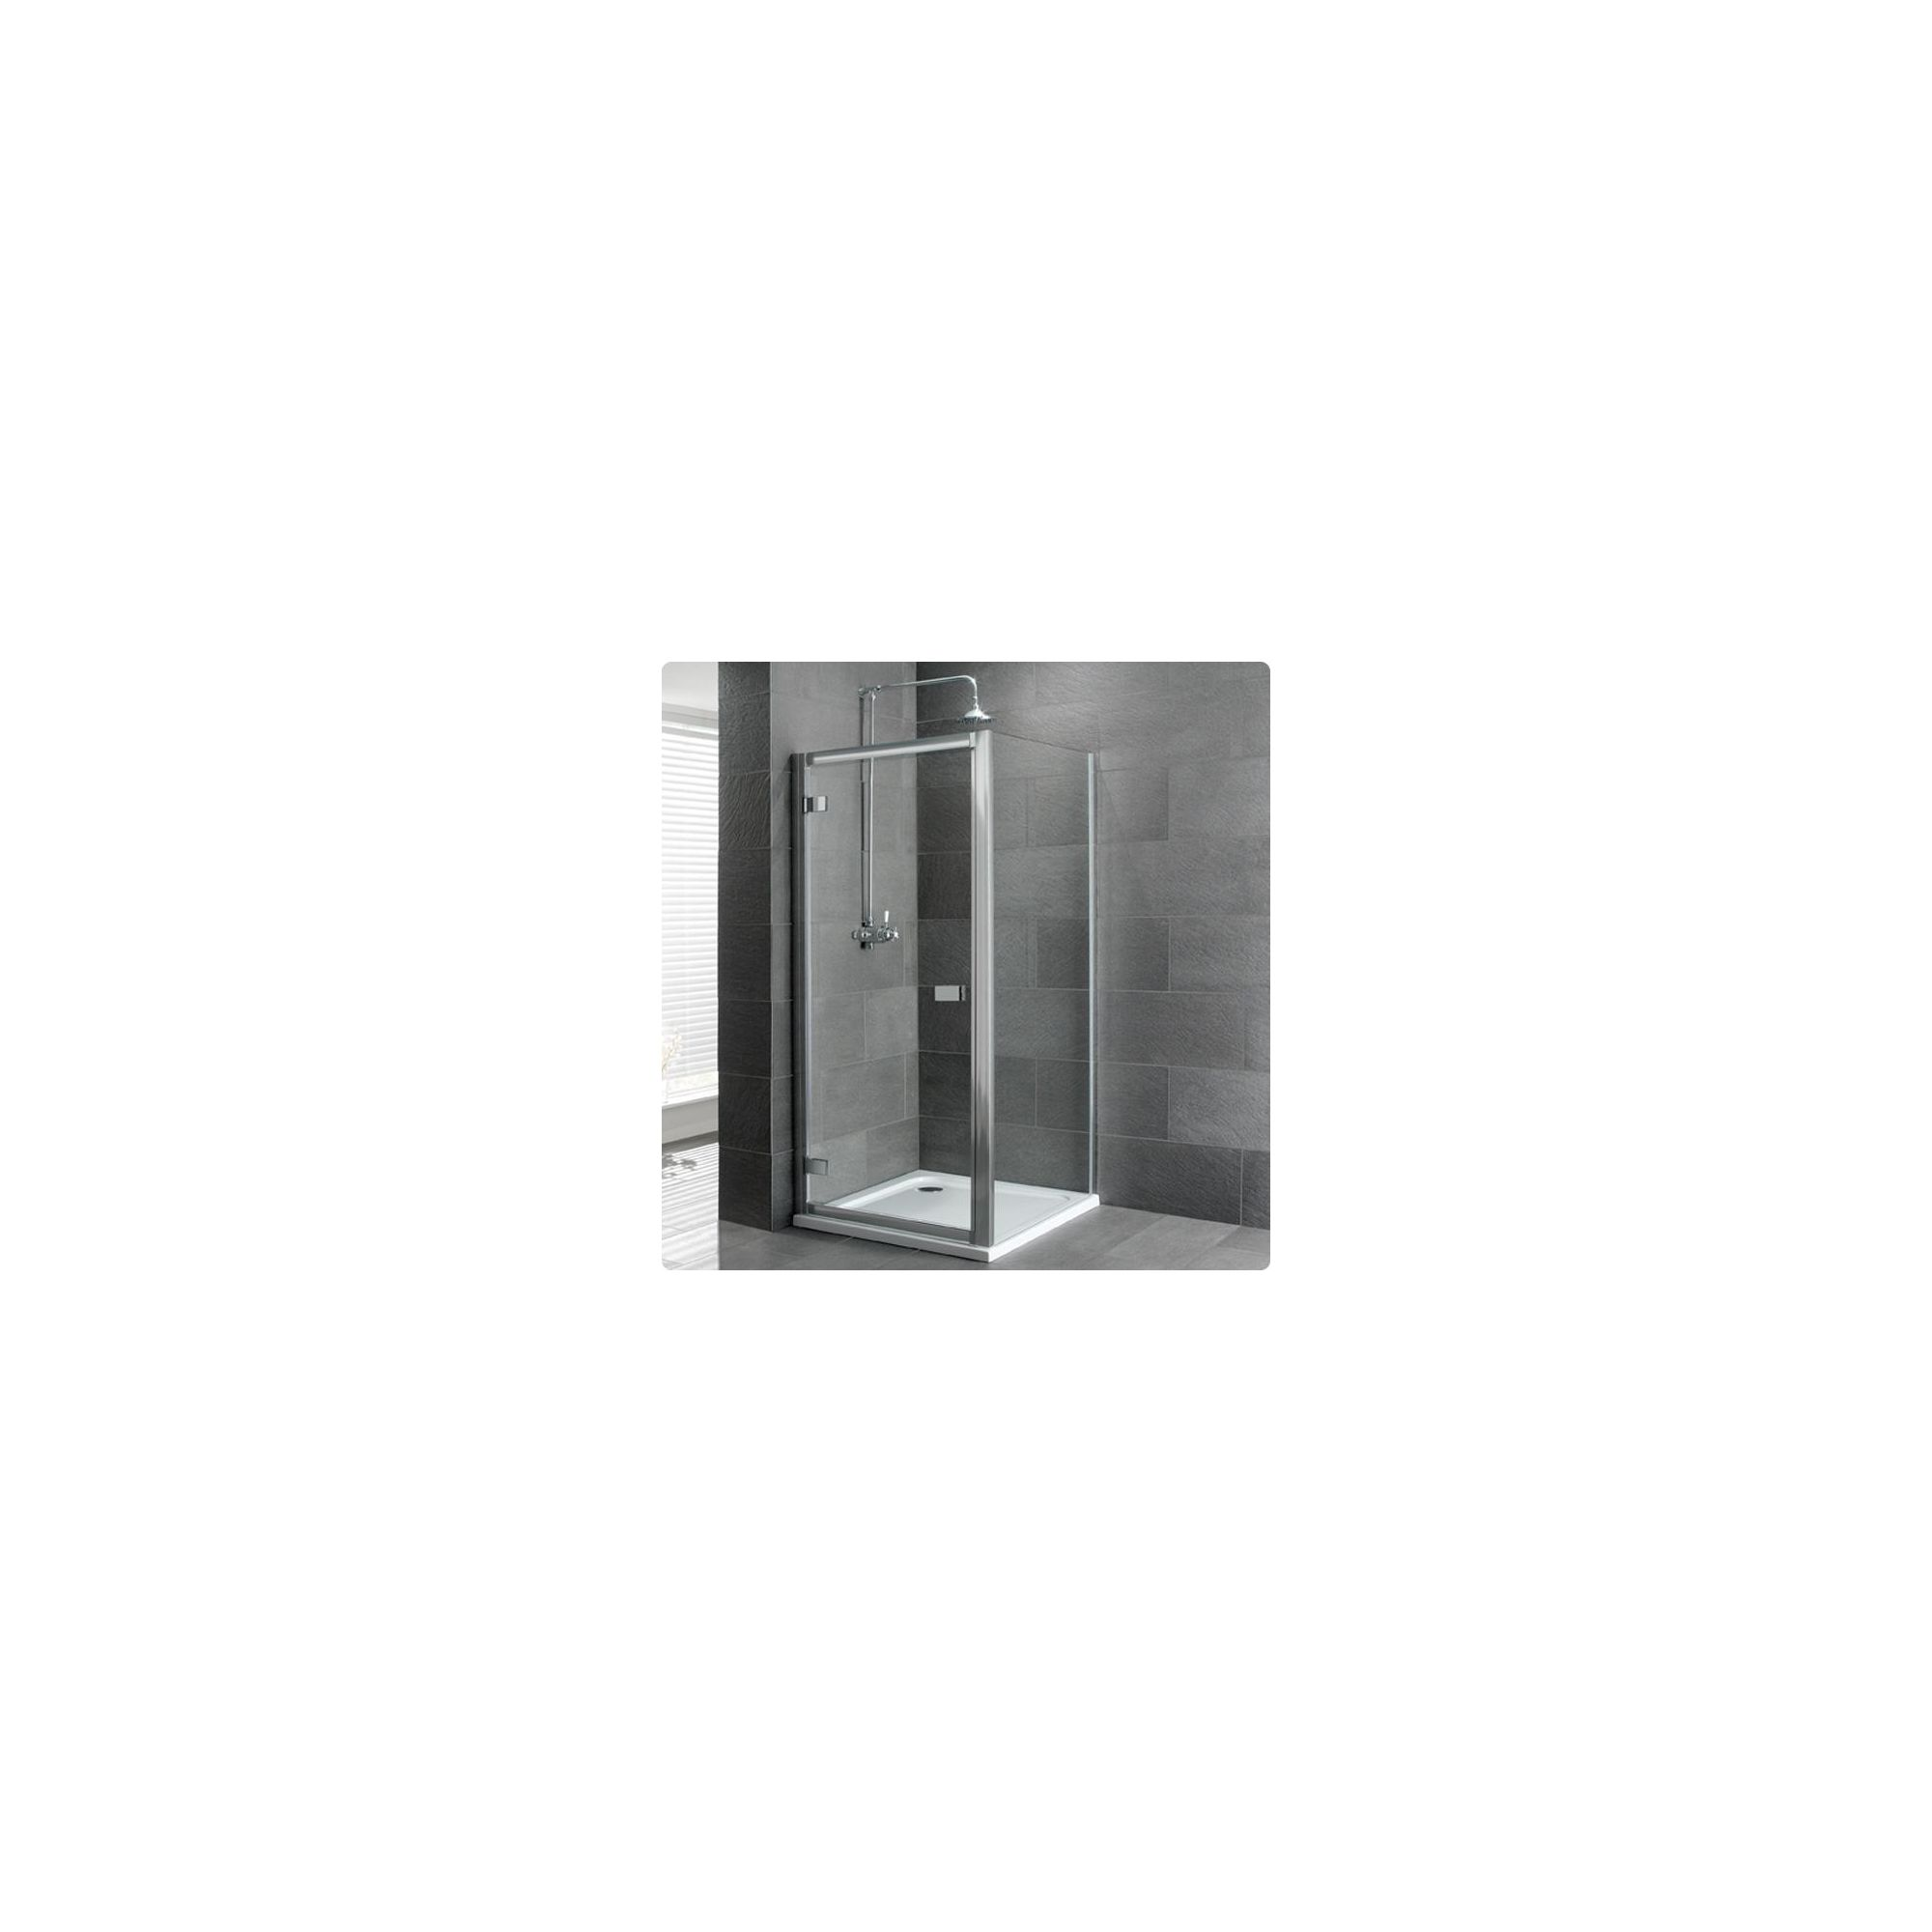 Duchy Select Silver Hinged Door Shower Enclosure, 1000mm x 900mm, Standard Tray, 6mm Glass at Tesco Direct